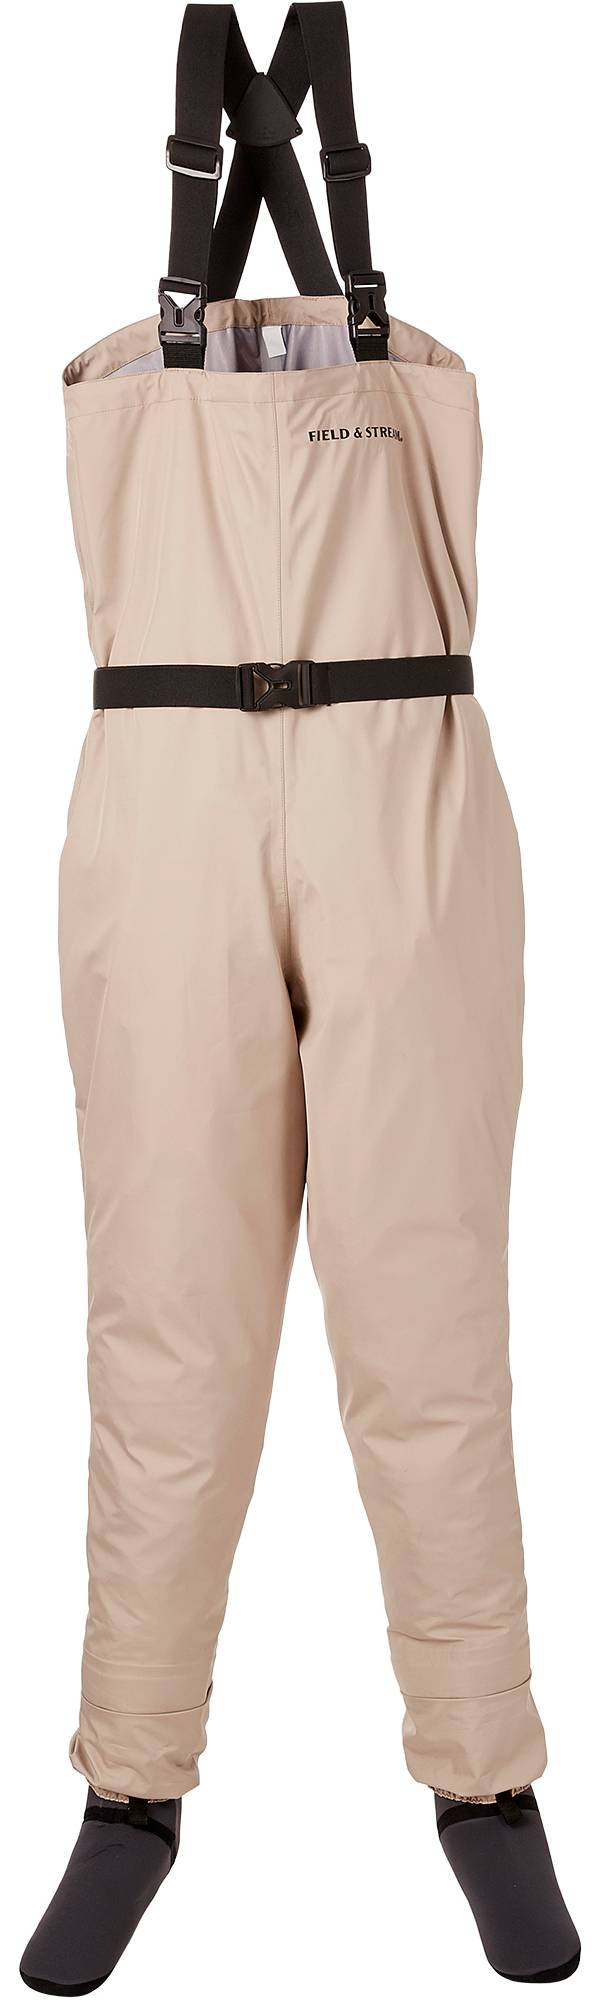 Field & Stream Sportsman Breathable Chest Waders product image